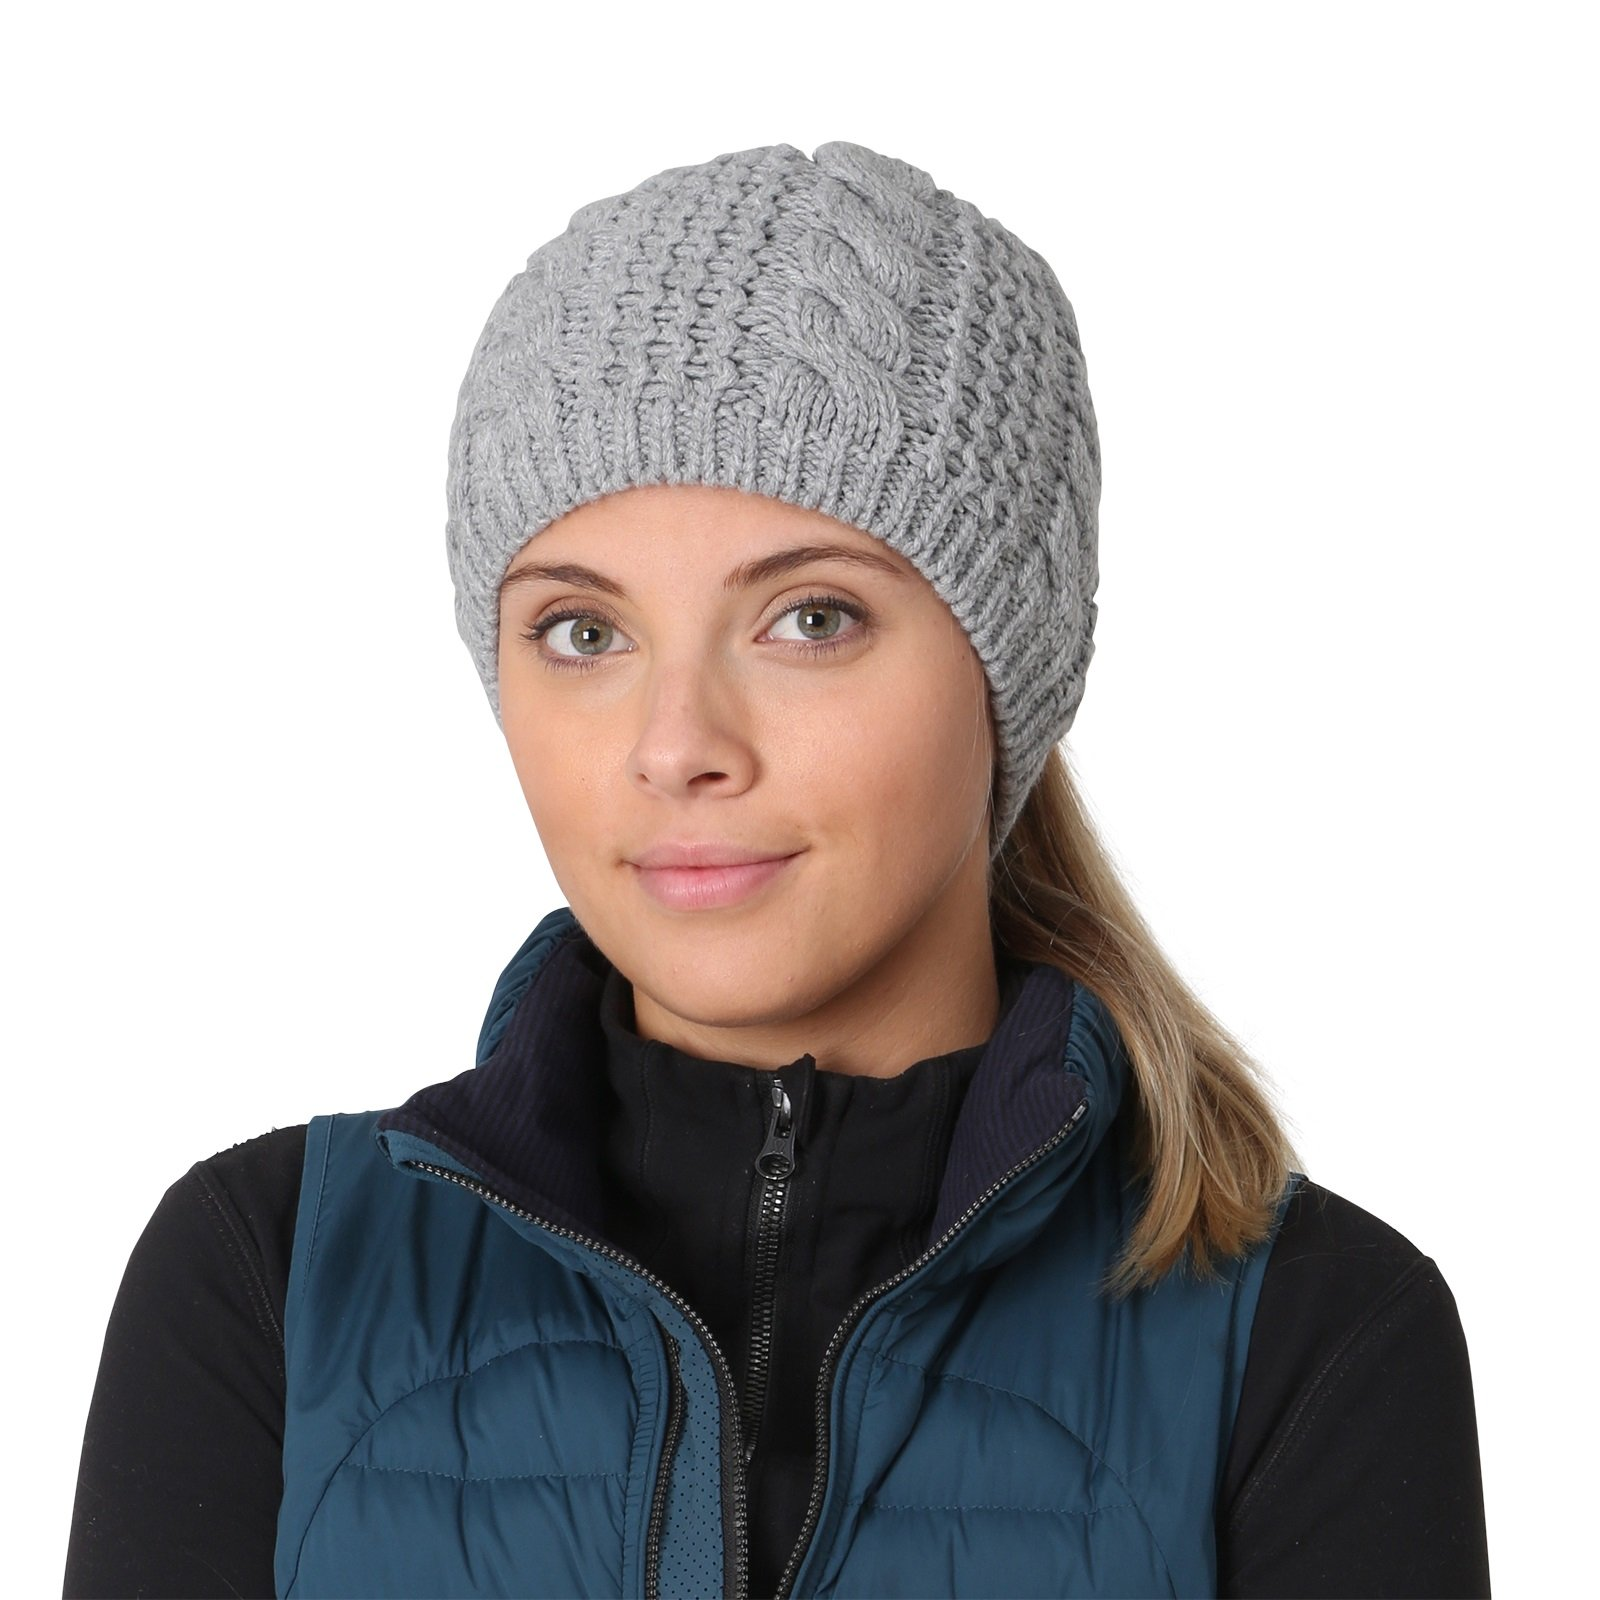 TrailHeads Women's Cable Knit Ponytail Beanie - storm grey by TrailHeads (Image #7)